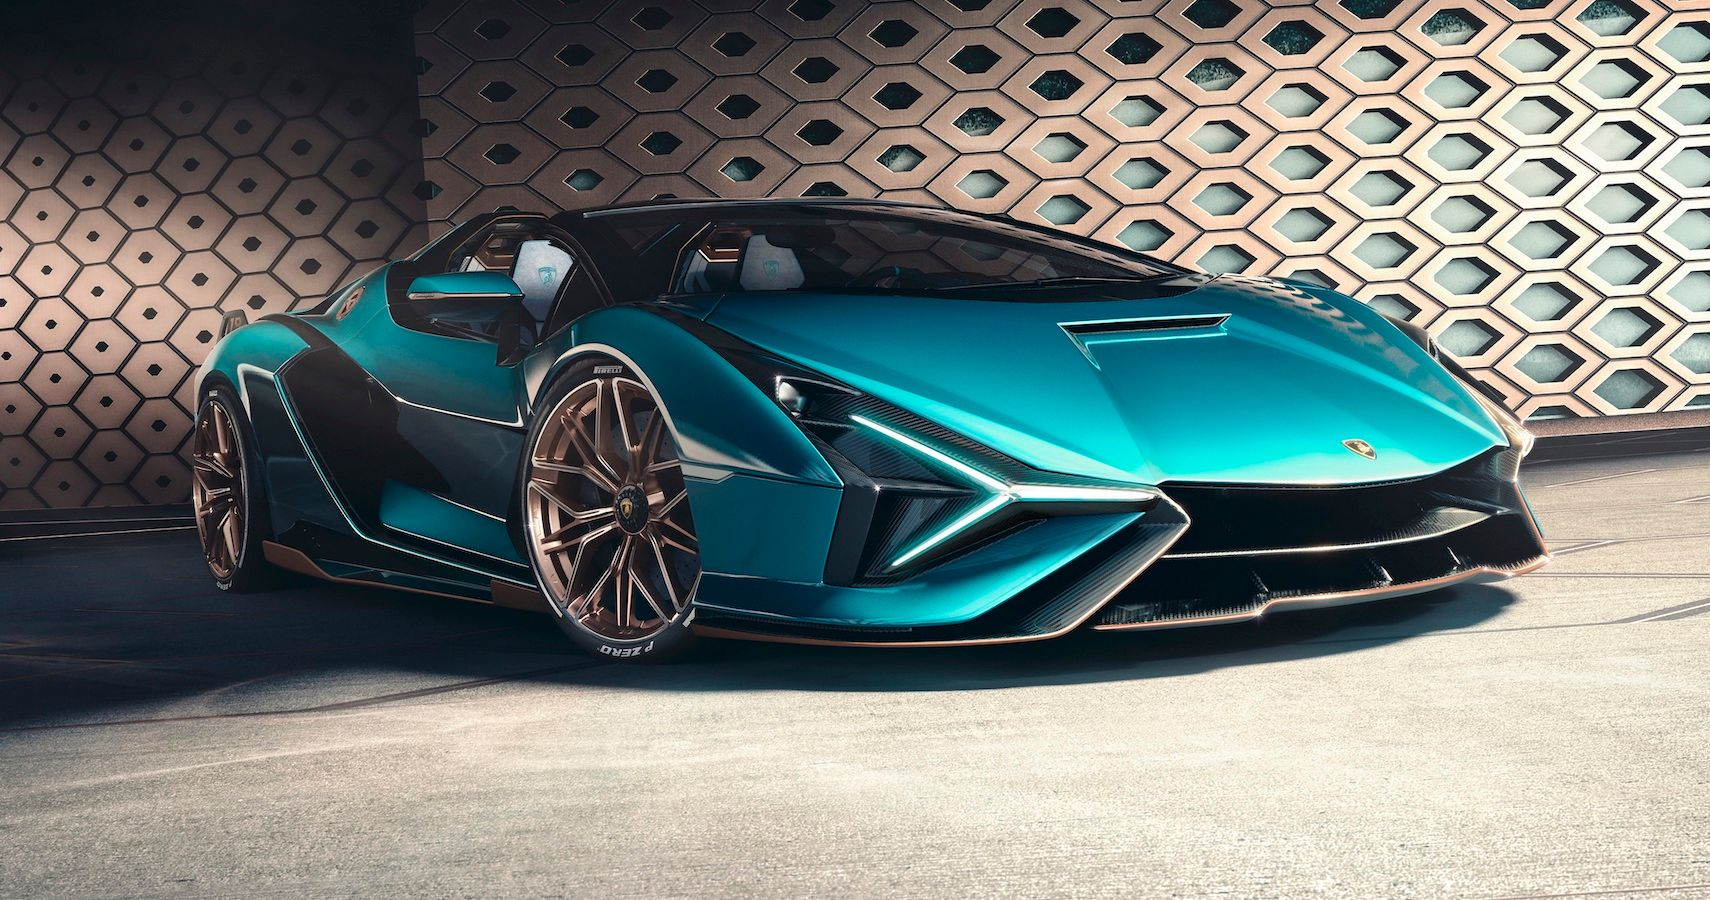 Lamborghini Closes Out 2020 With Six-Month Sales Record Amid Coronavirus